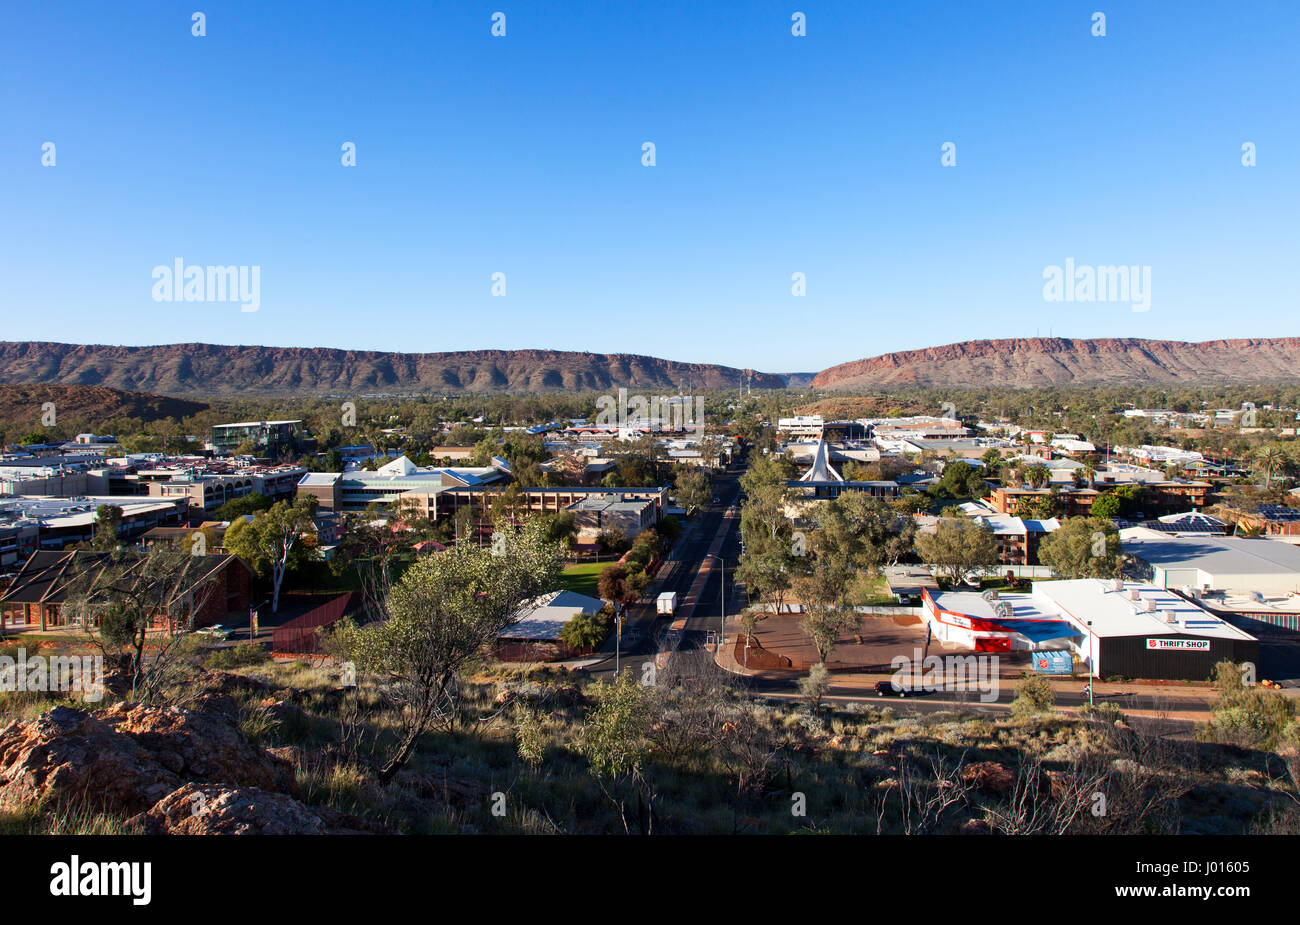 Alice Springs, Northern Territory, Australia Stock Photo